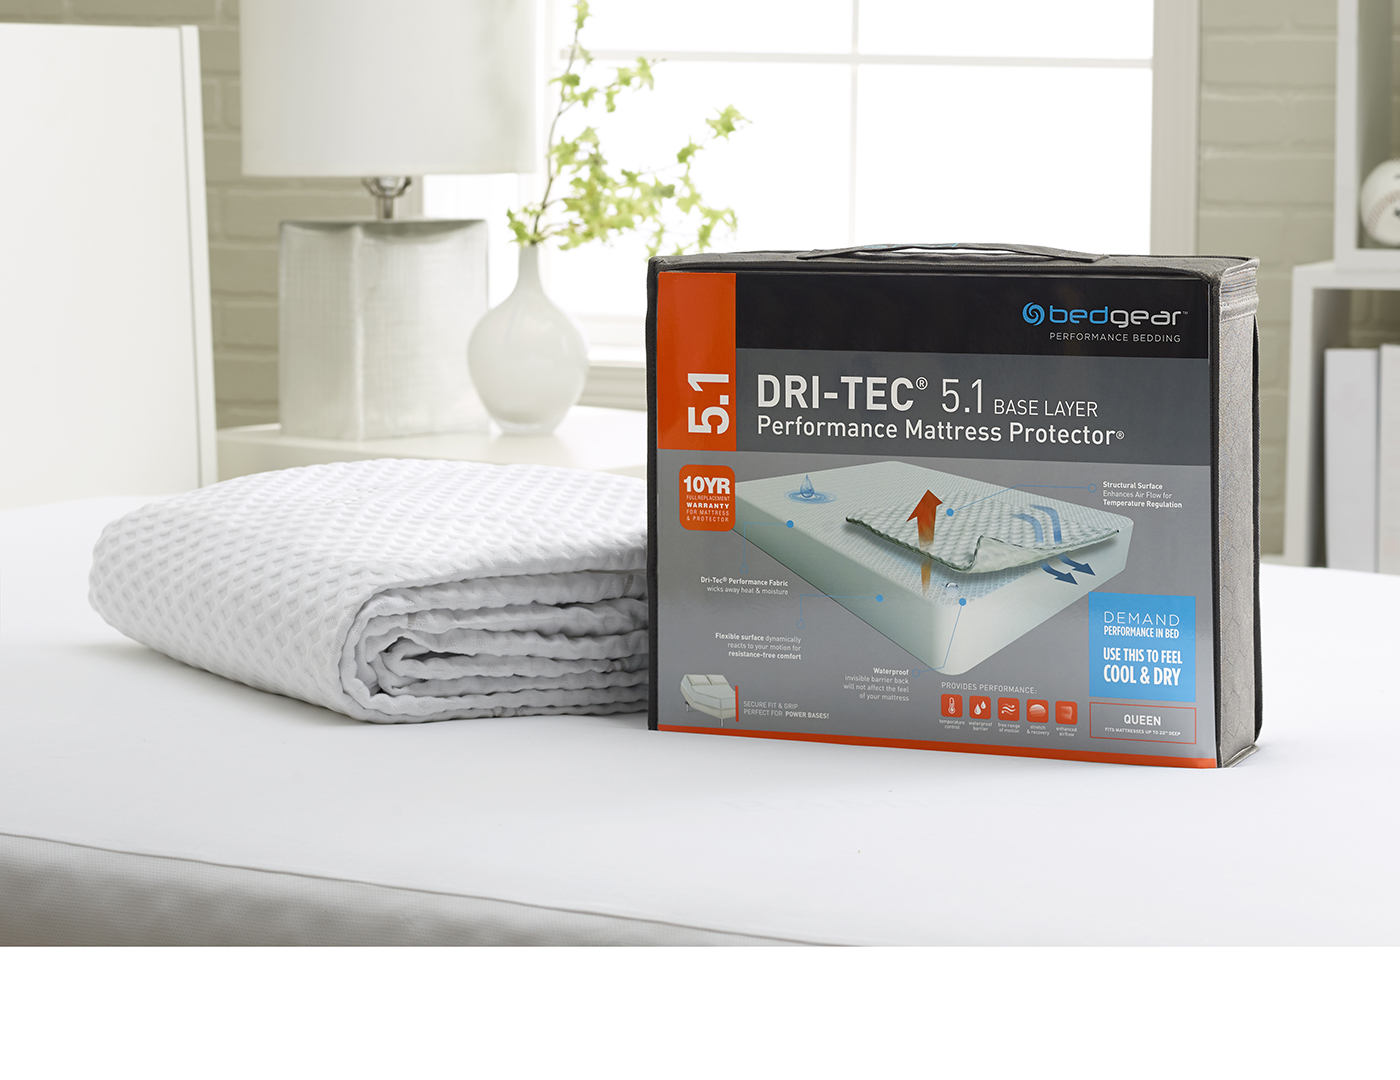 bedgear 5.1 Dri-Tec Moisture Wicking Twin XL Mattress Protector